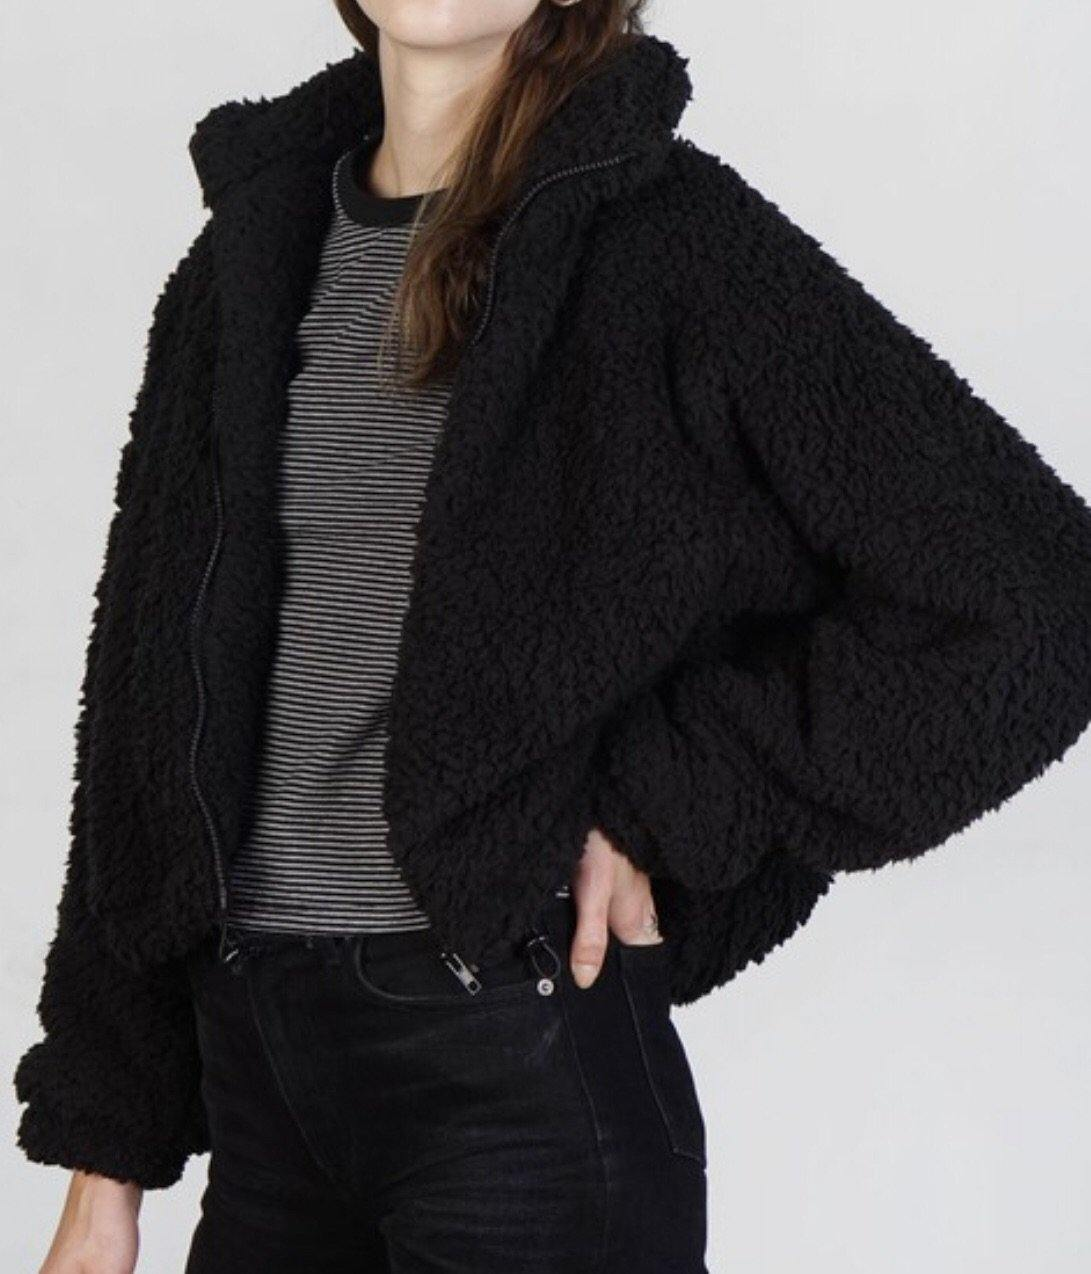 TENLEY SHERPA JACKET - elbie boutique, LLC